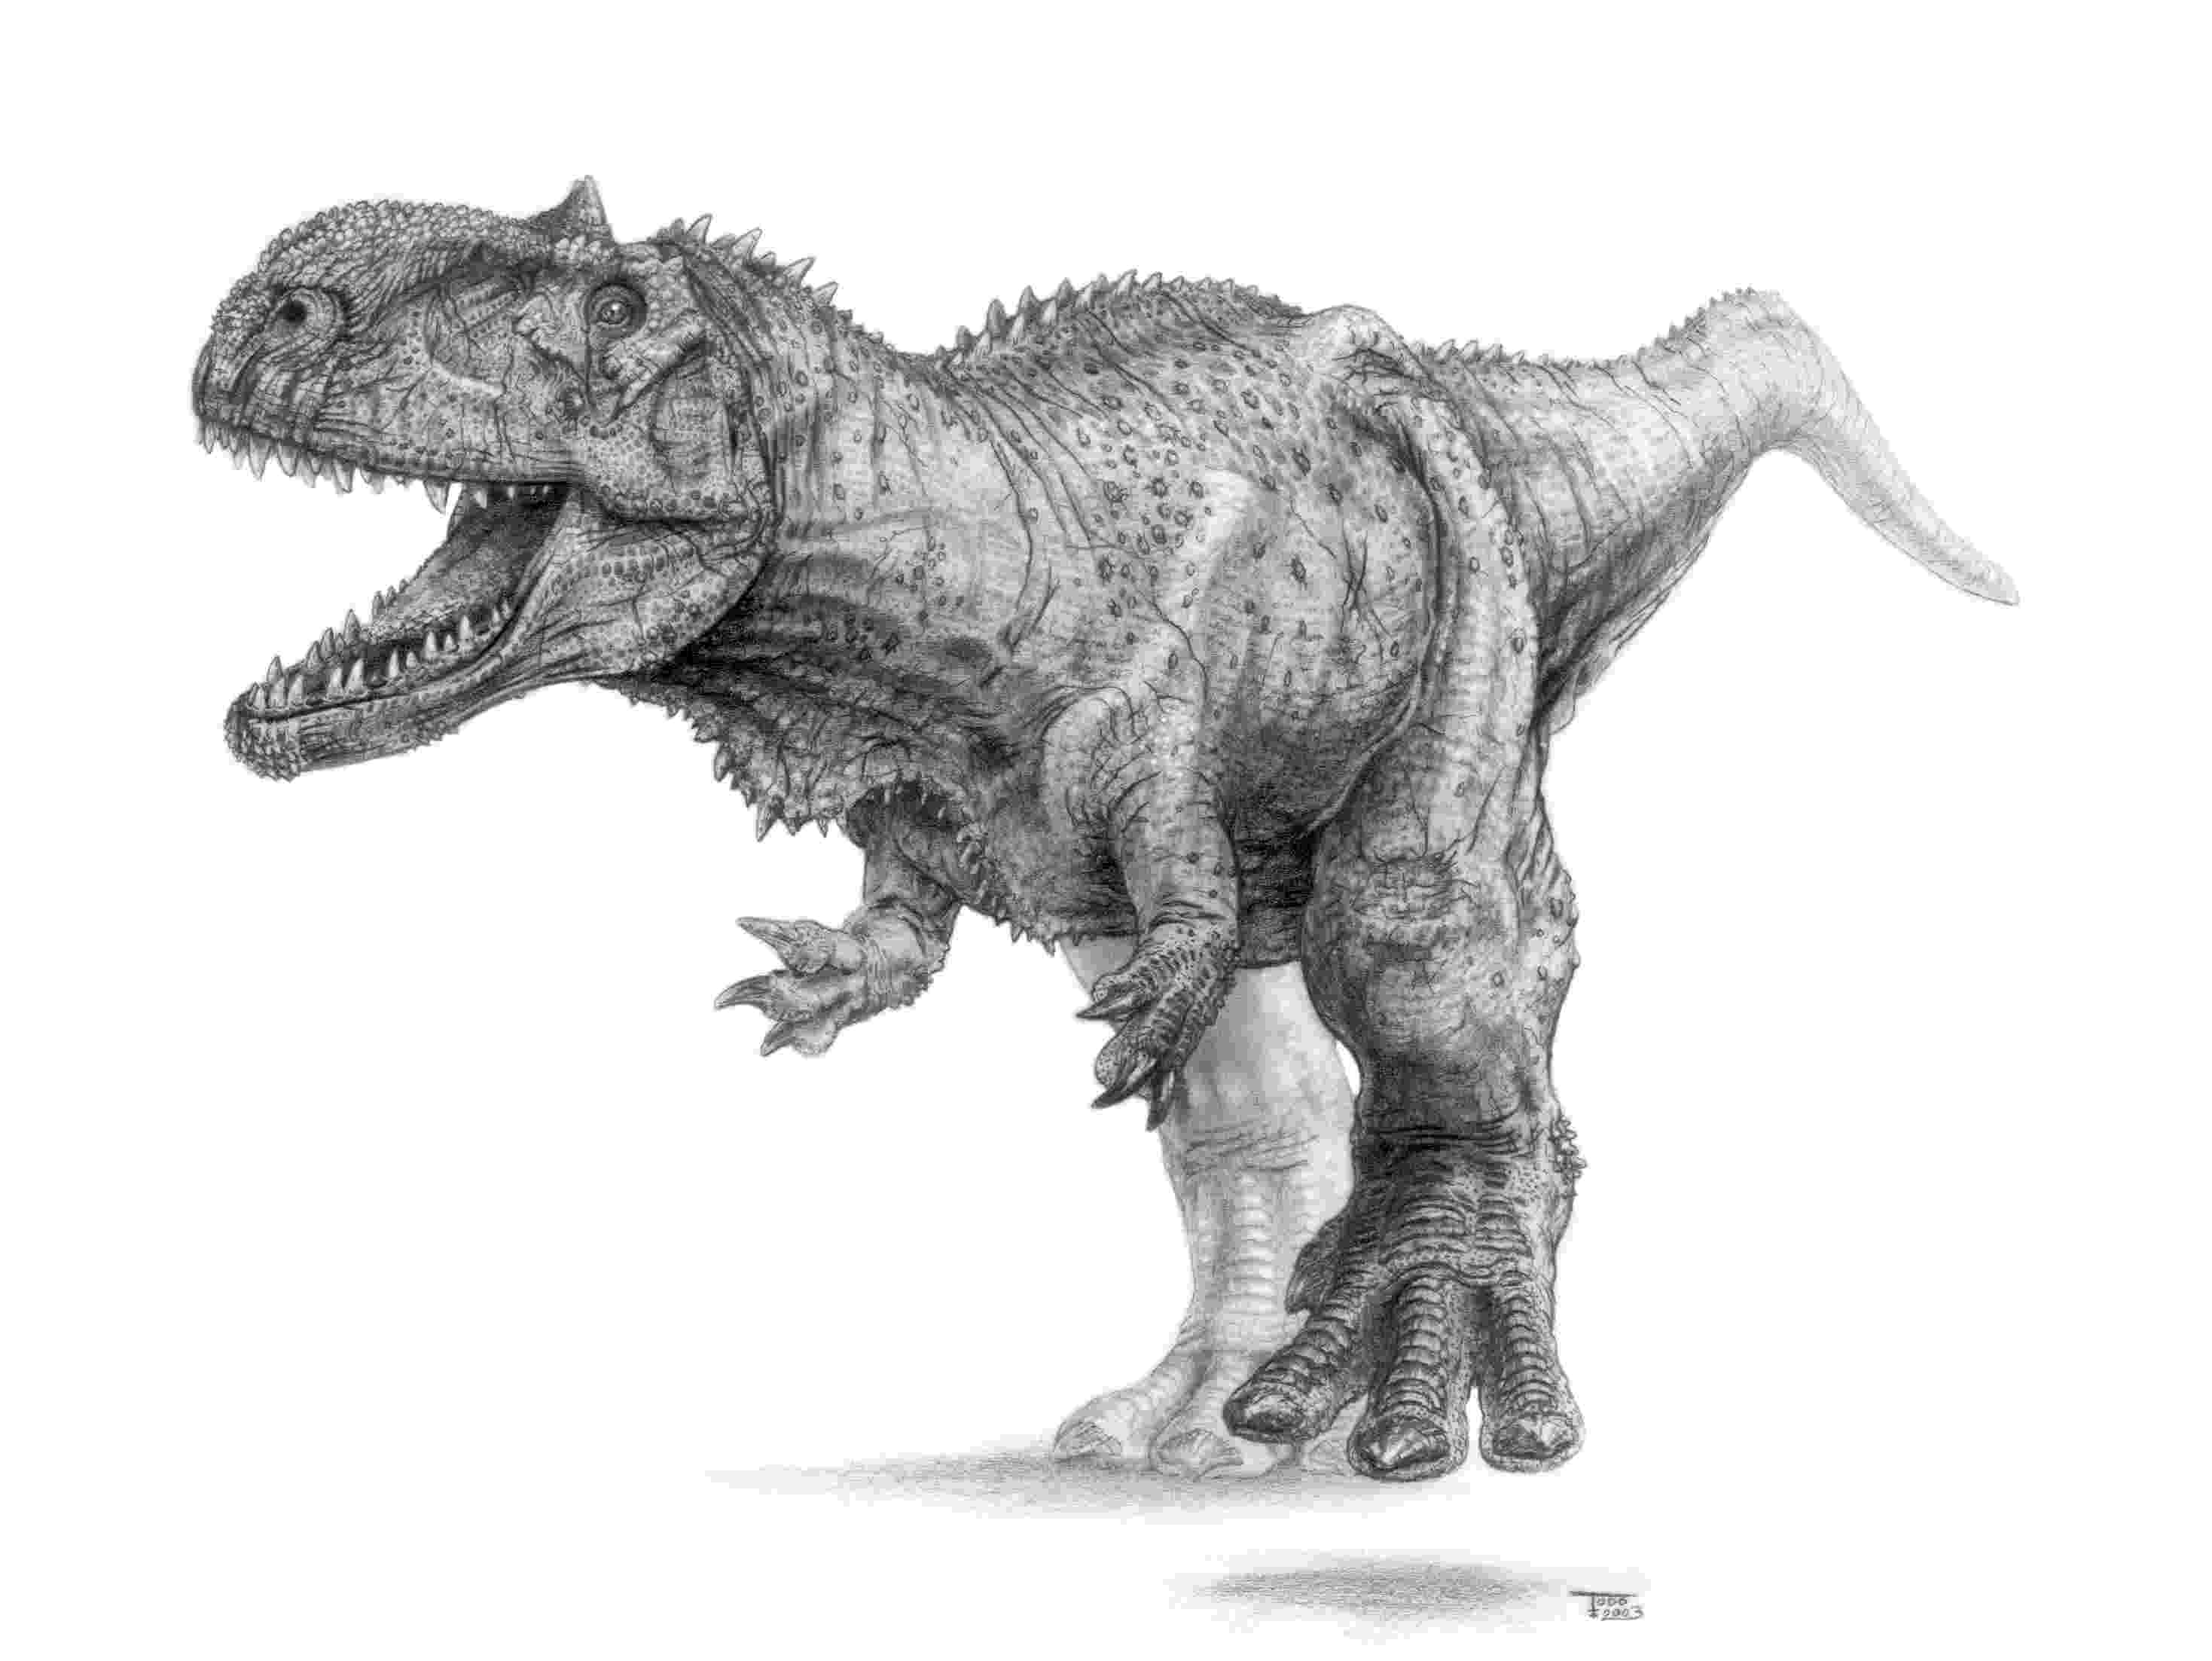 dinosaur images giganotosaurus facts and pictures jonahs board in images dinosaur